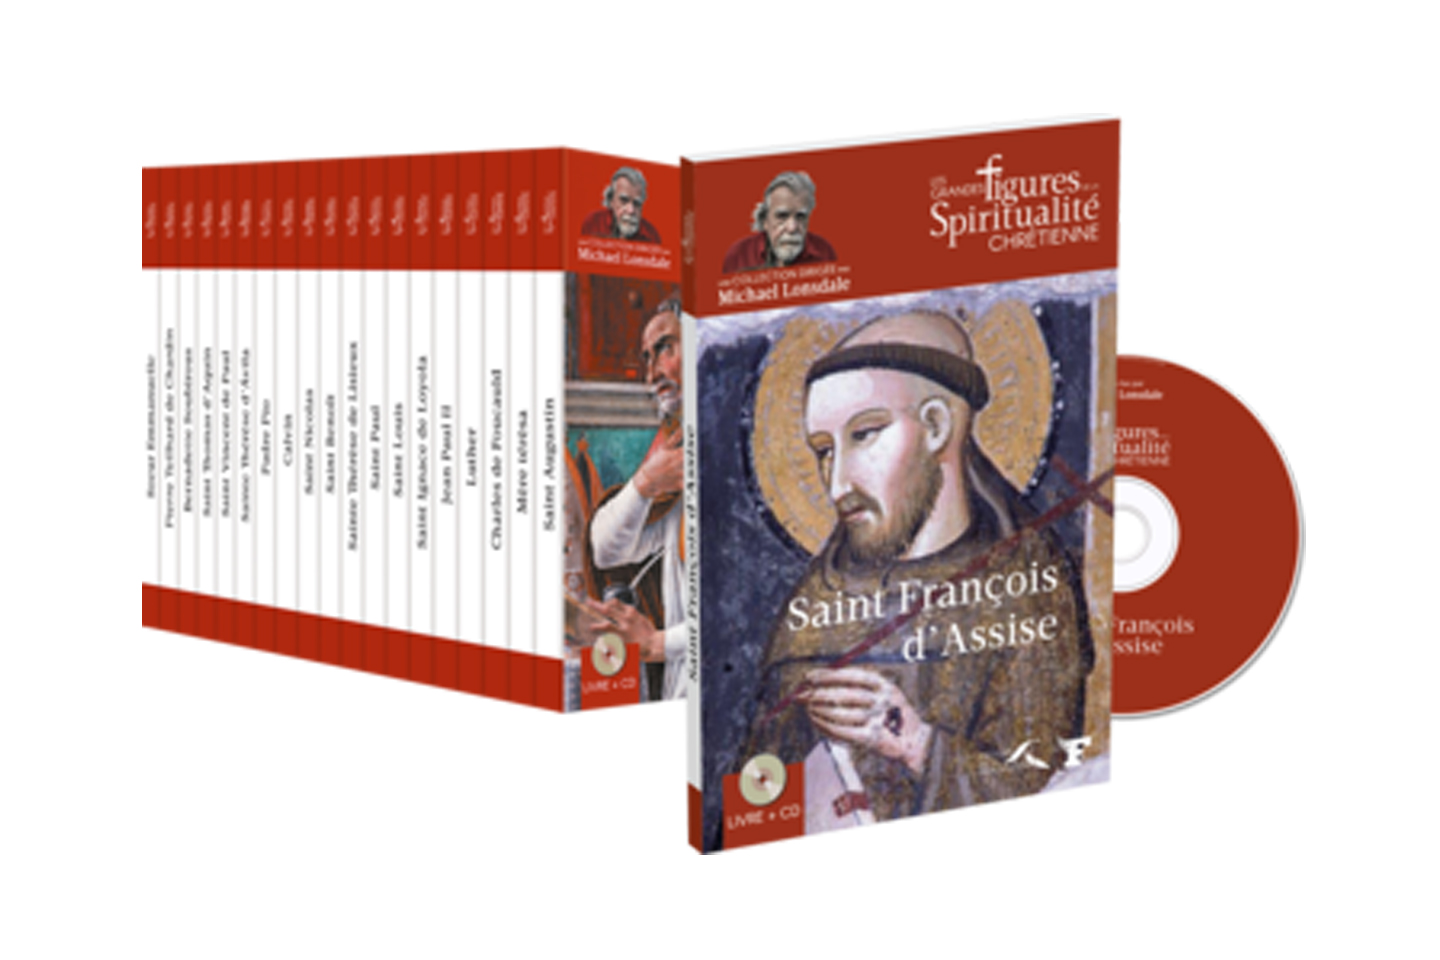 web-books-cover-saint-francis-of-assisi-figaro-collections-2